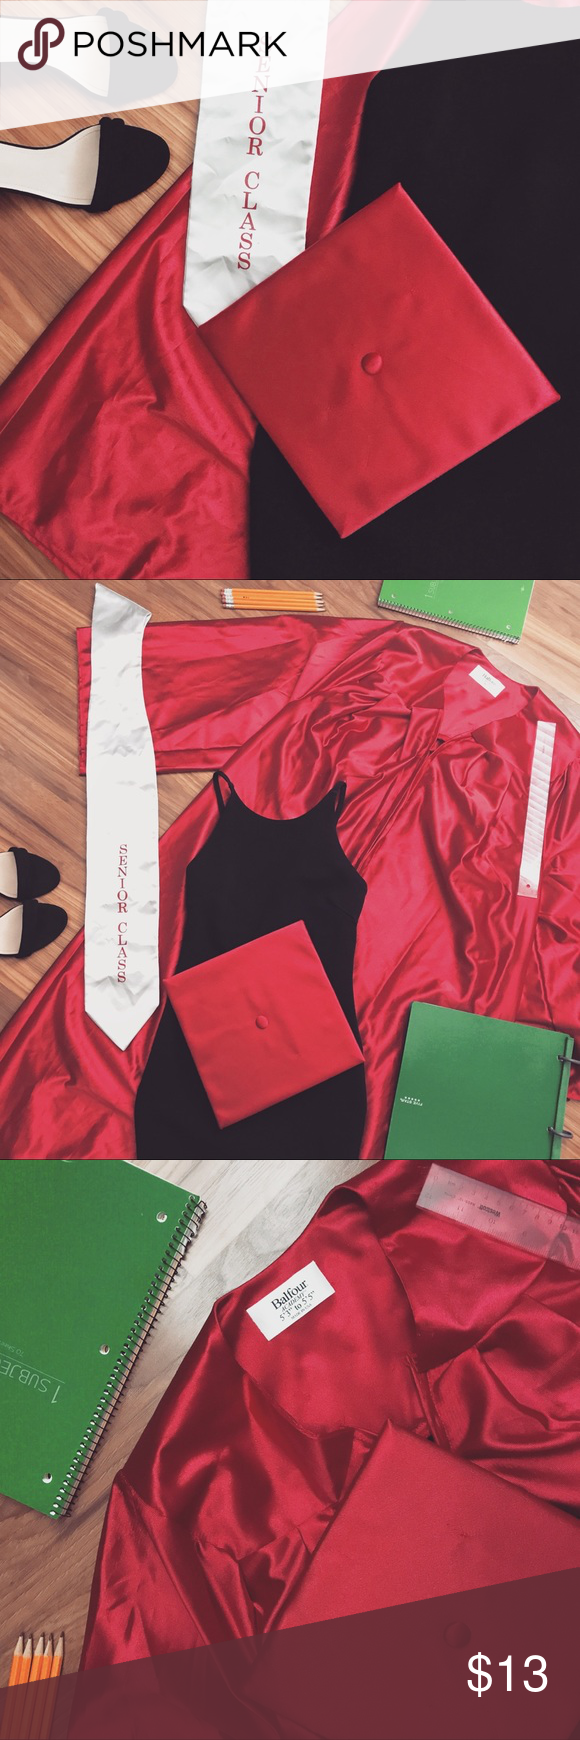 Balfour Red Cap and gown (Highschool) • Description/details: Fits ...